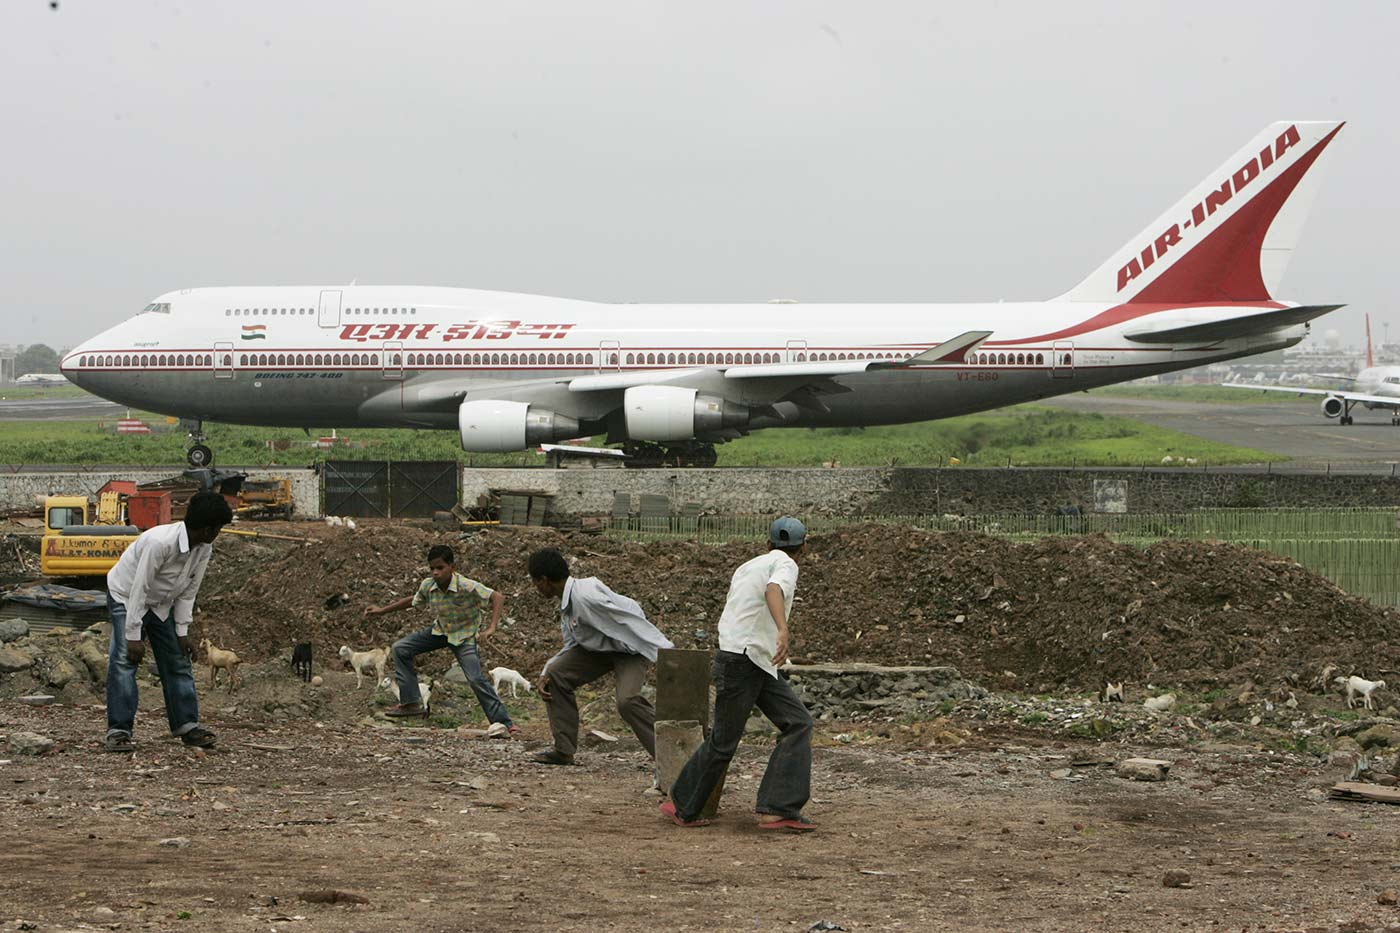 A game of cricket against the backdrop of an airplane